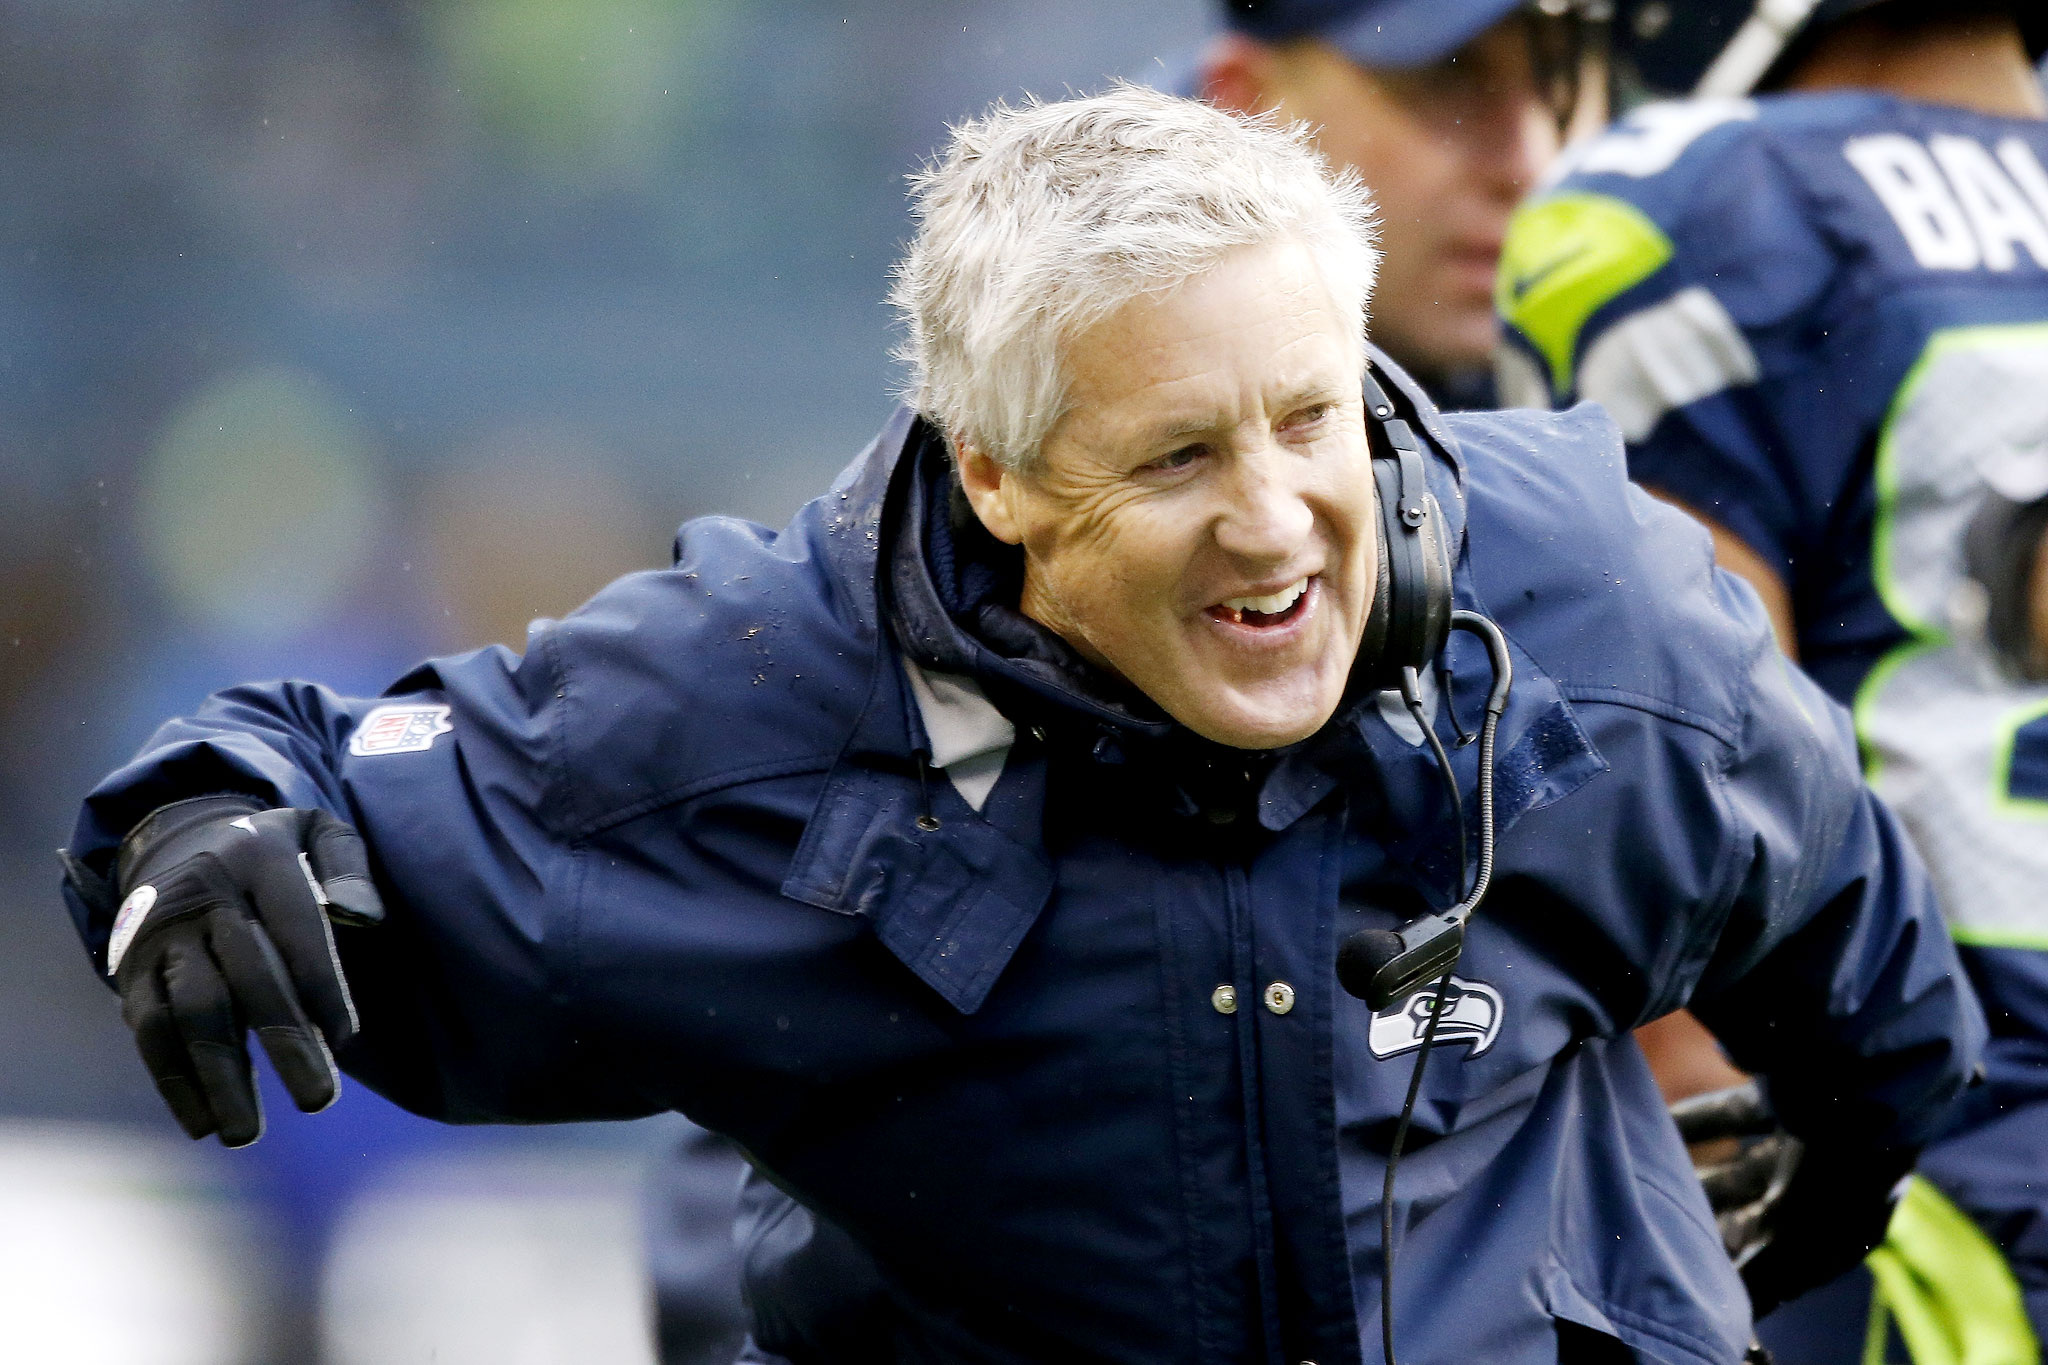 SEATTLE, WA - JANUARY 11:  Head coach Pete Carroll of the Seattle Seahawks reacts in the first half while taking on the New Orleans Saints during the NFC Divisional Playoff Game at CenturyLink Field on January 11, 2014 in Seattle, Washington.